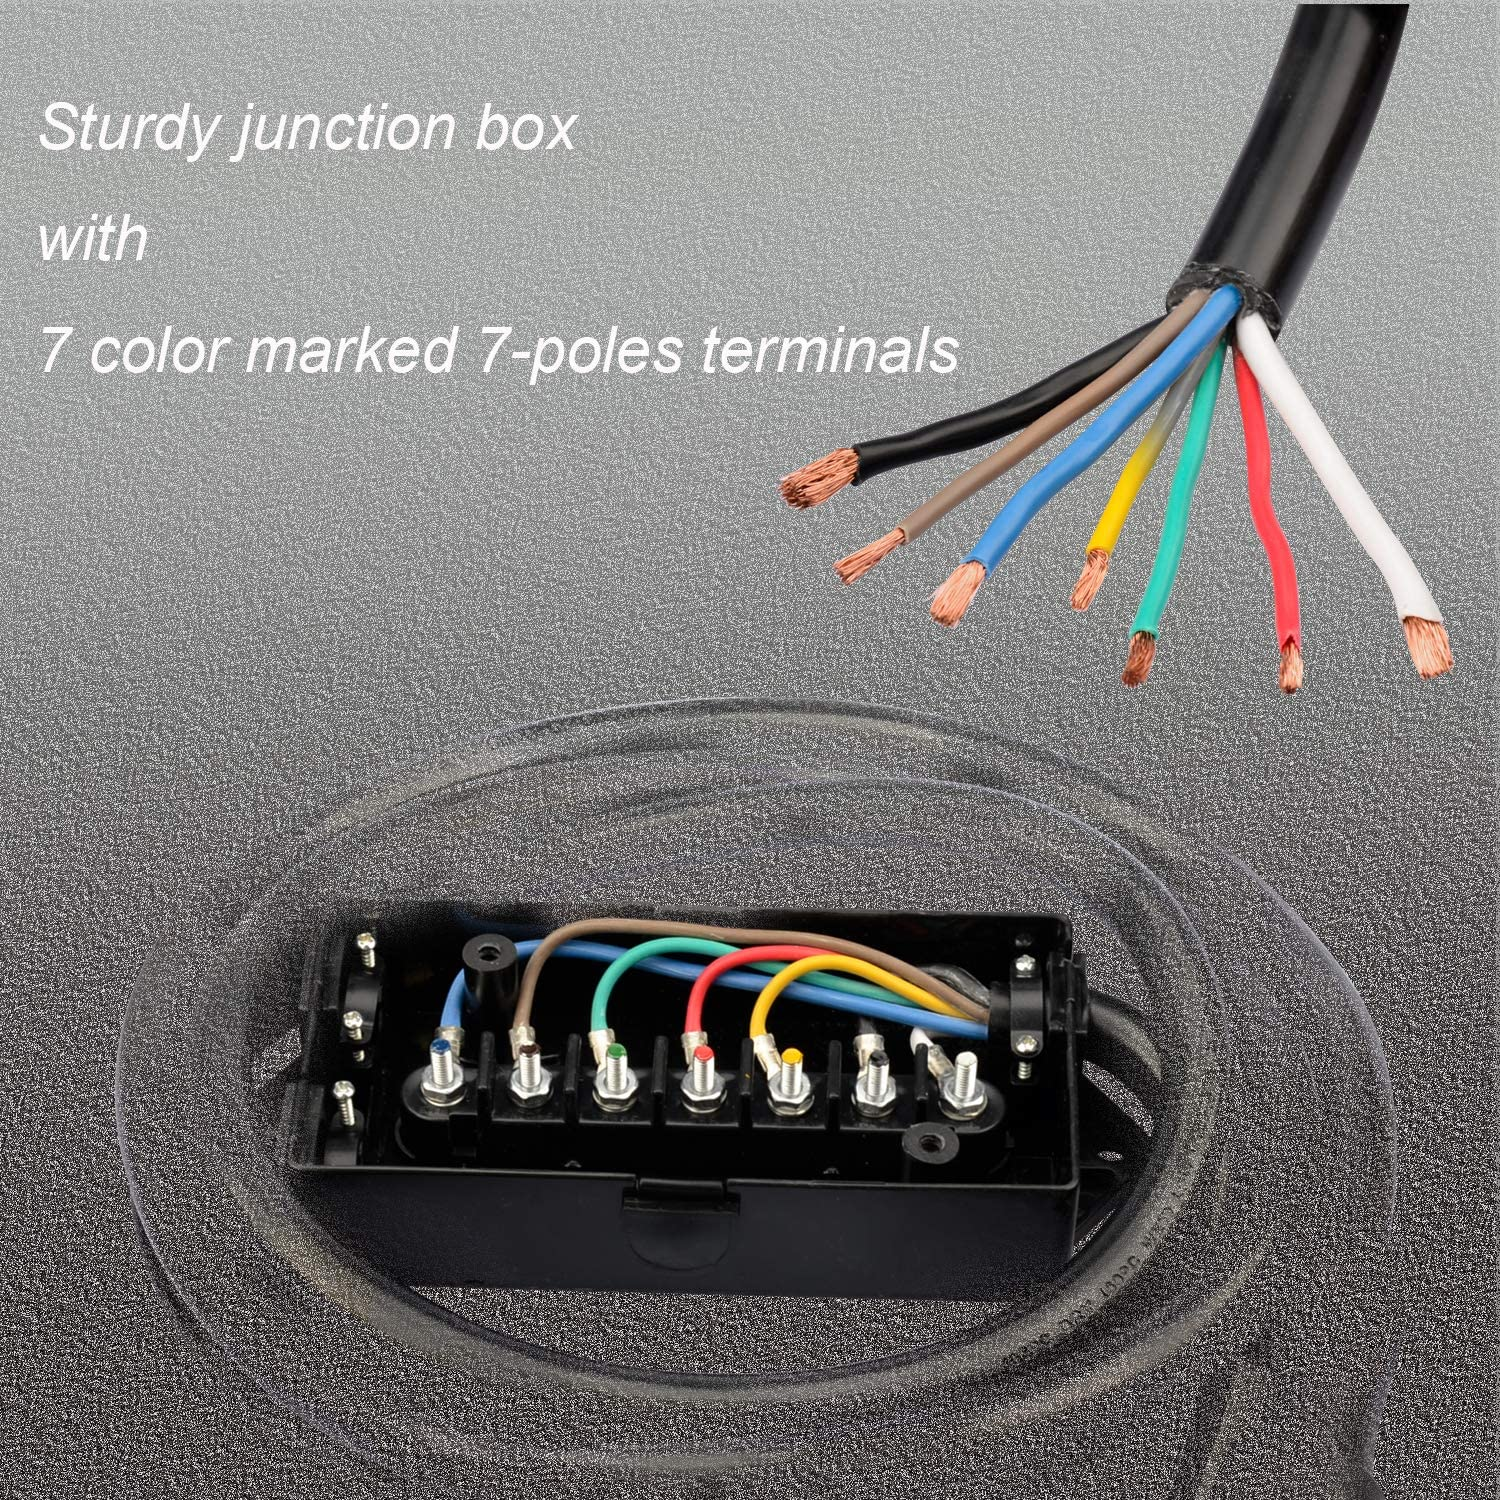 Trailer Connector Cable Wiring Harness with Waterproof Junction Box RVMATE 7 Way 8 Feet Plug Trailer Cord Kit,Include 12V Breakaway Switch and Plug Holder